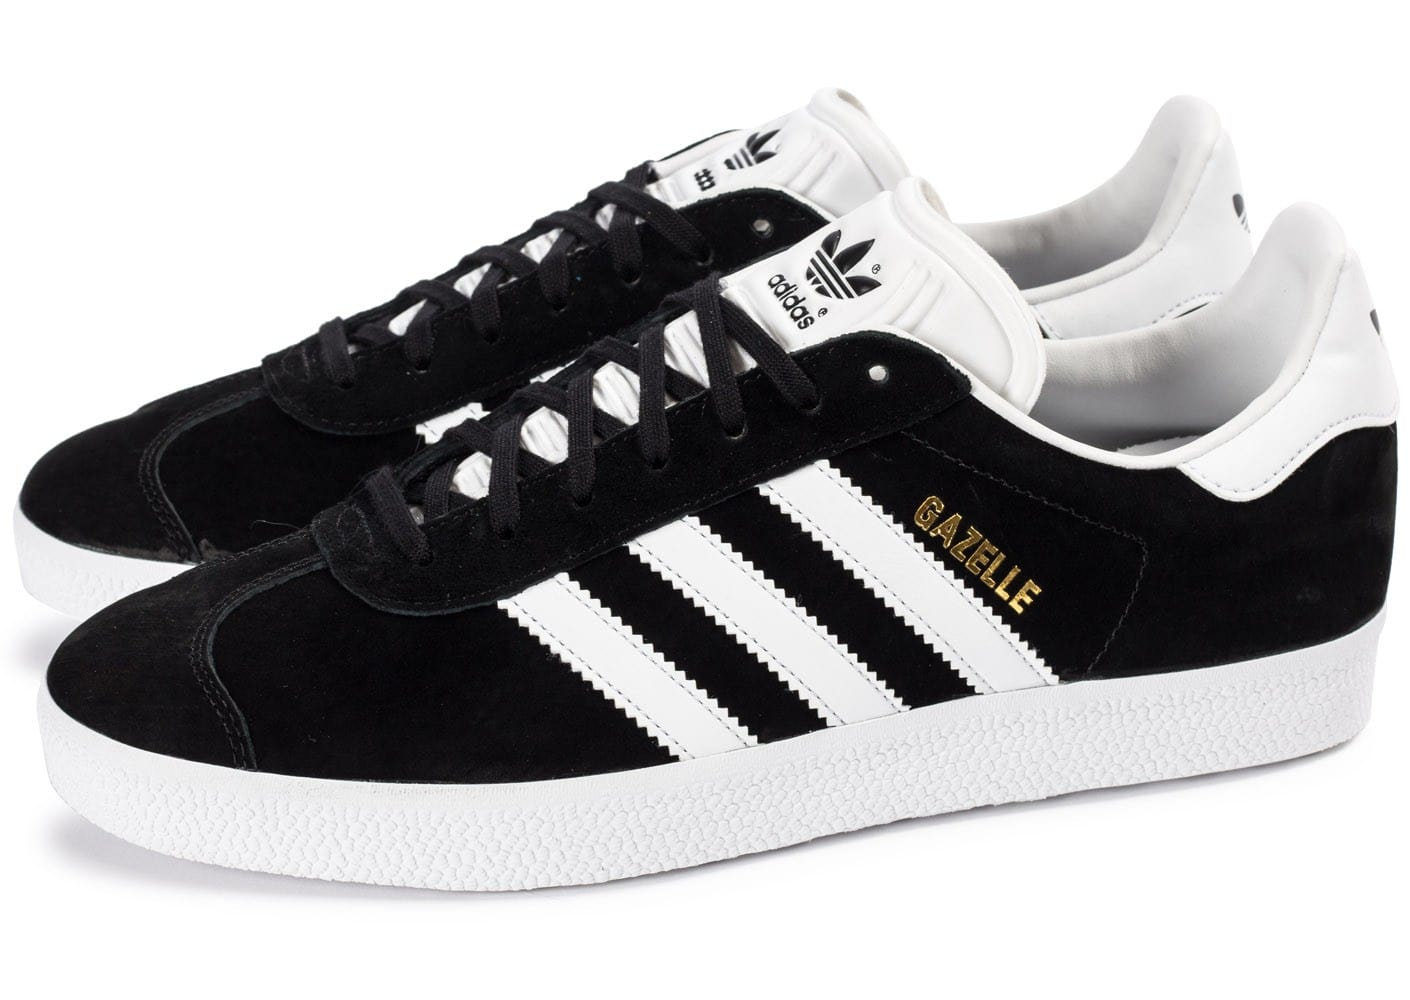 adidas gazelle noire et blanche chaussures homme chausport. Black Bedroom Furniture Sets. Home Design Ideas